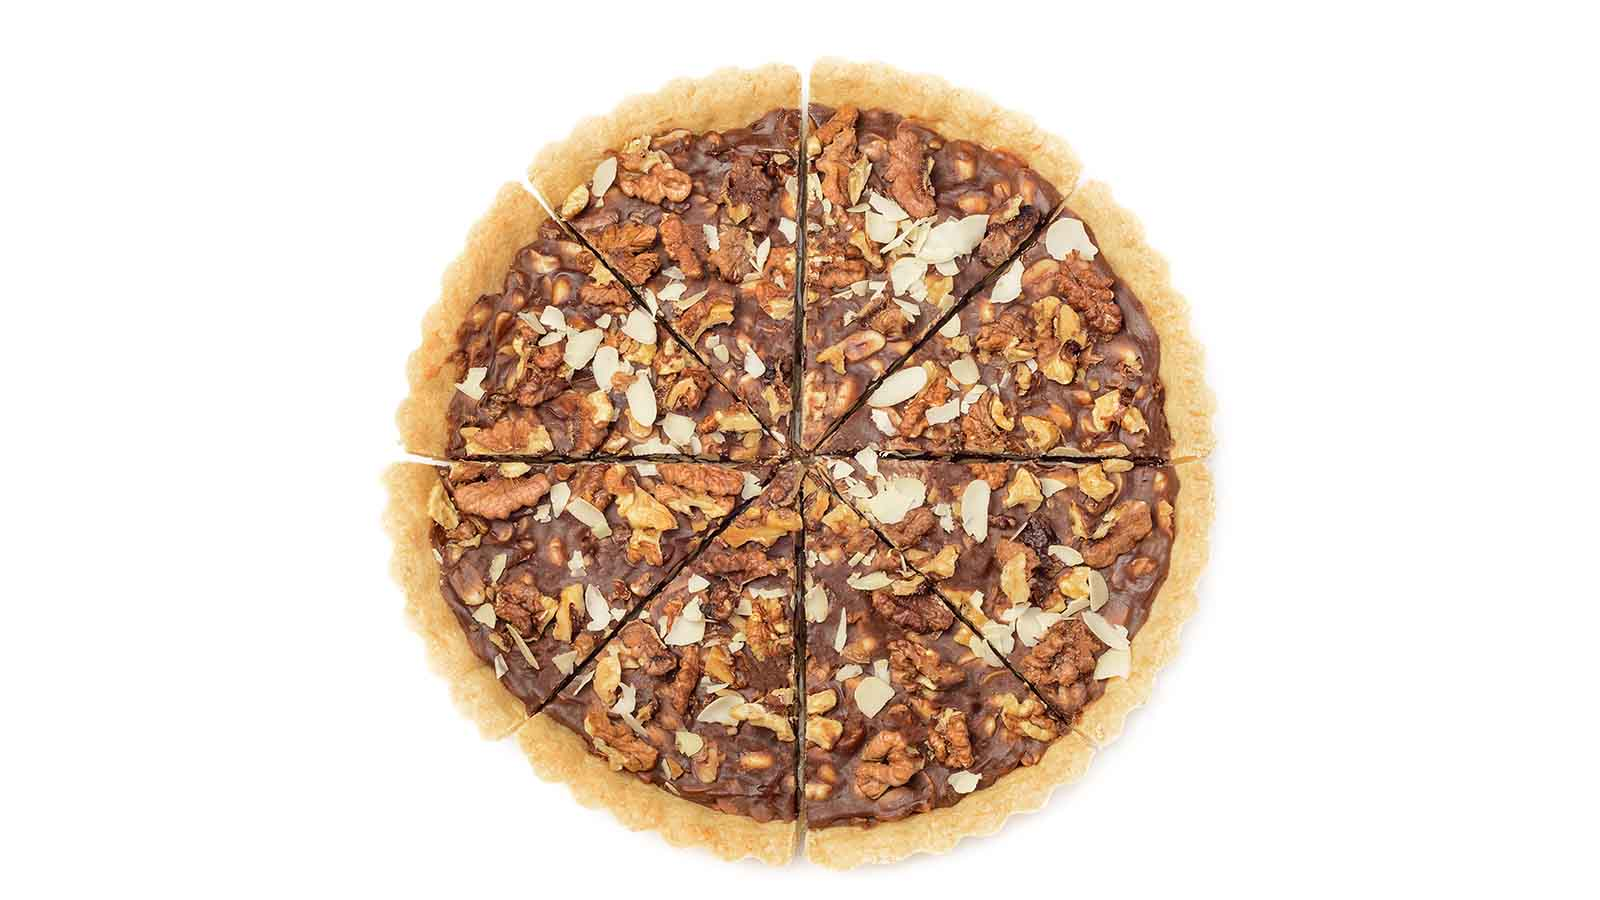 Tart with Nuts and chocolate